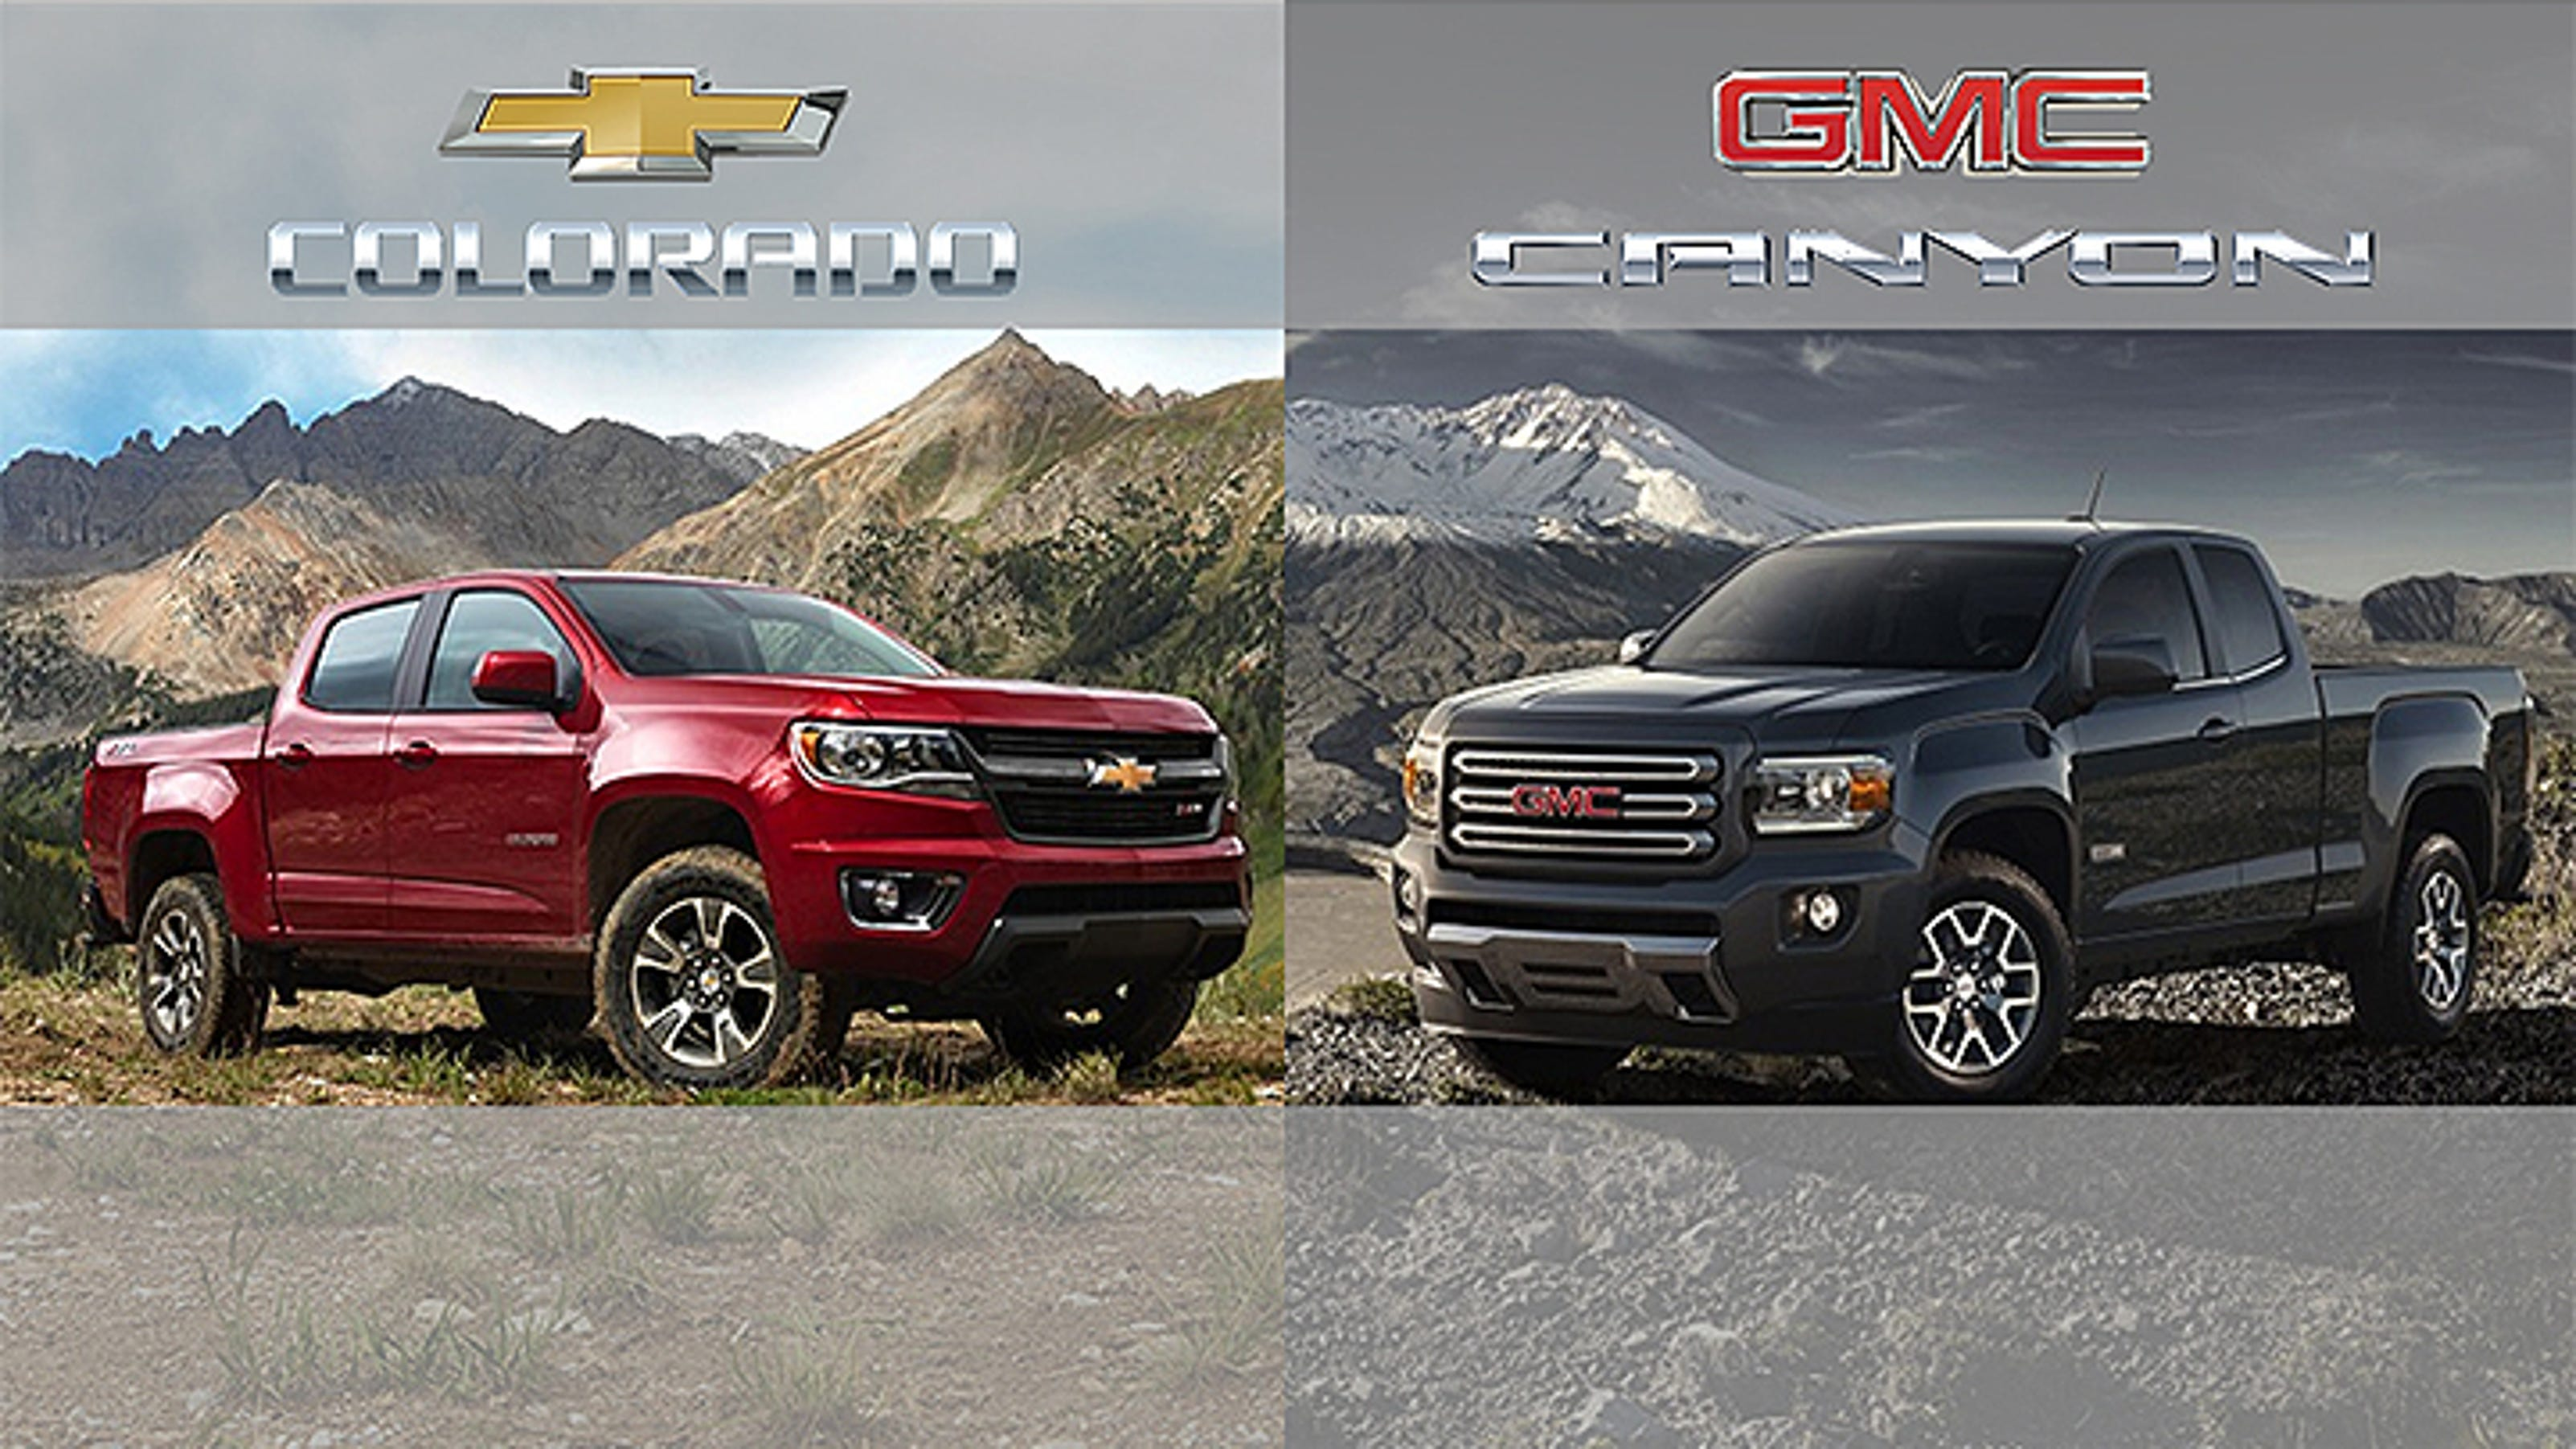 Chevy Colorado GMC Canyon offer 27 mpg highway The Detroit News